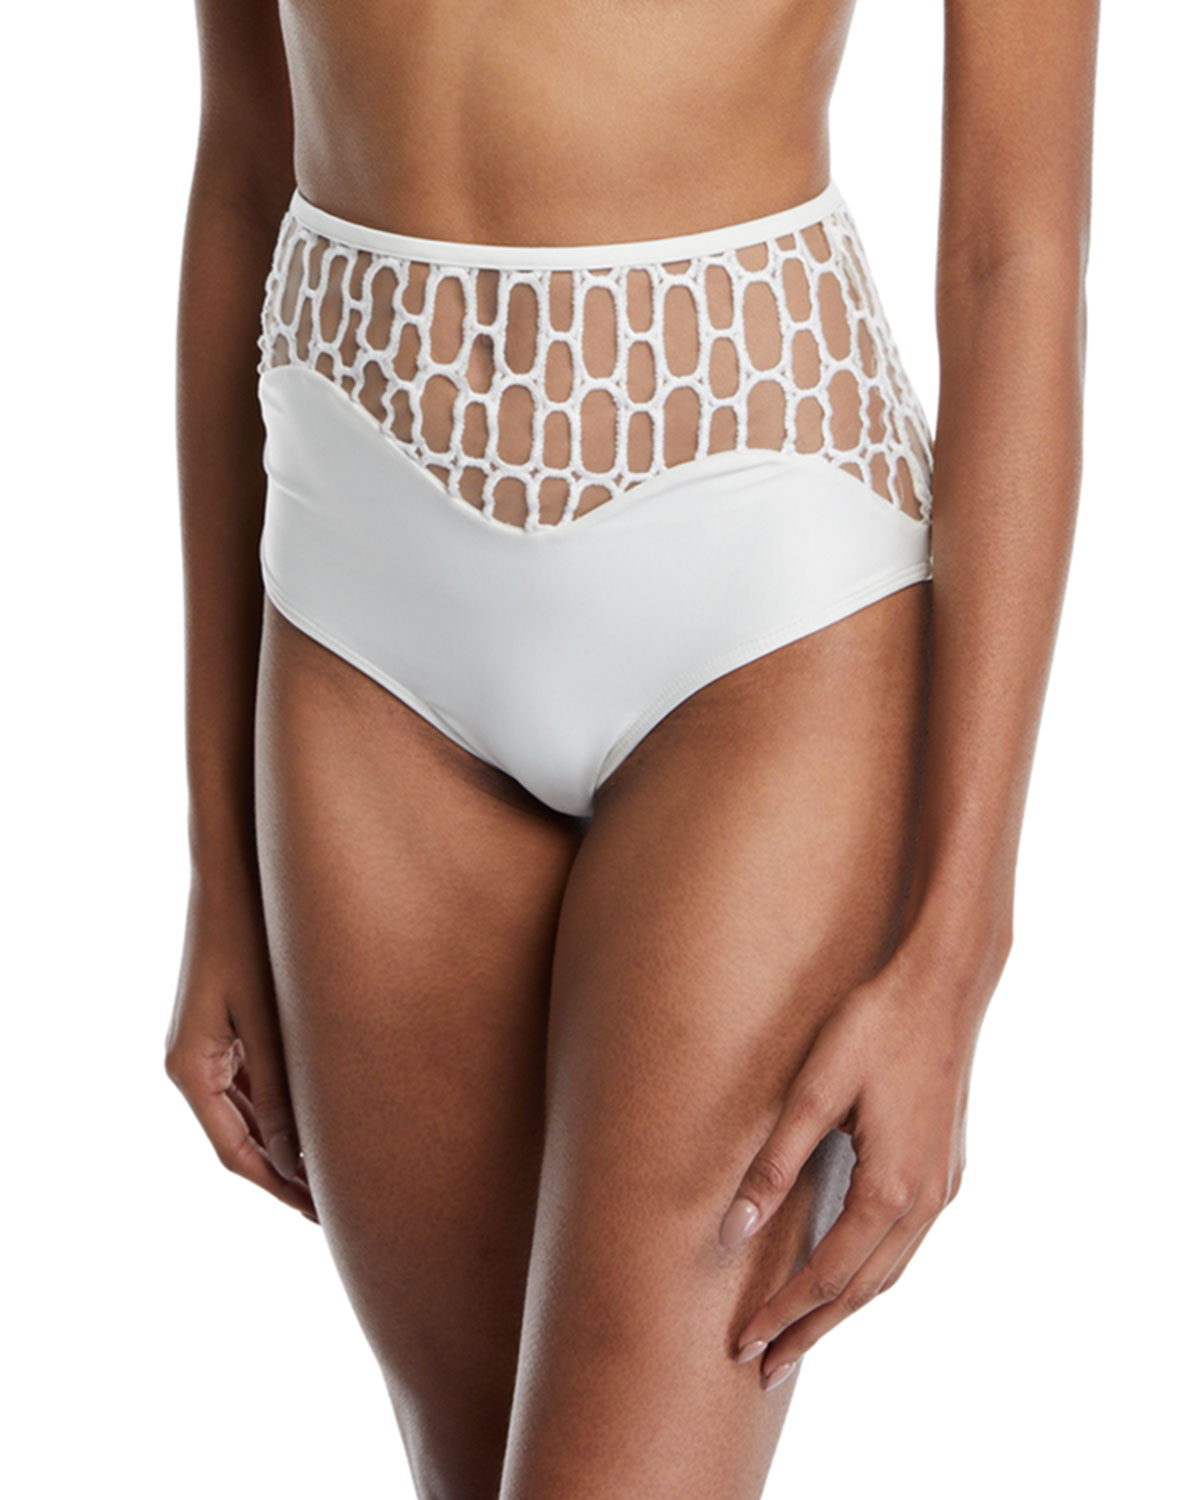 ÁGUA DE COCO Atlantica Mesh High-Waist Bikini Swim Bottoms in White